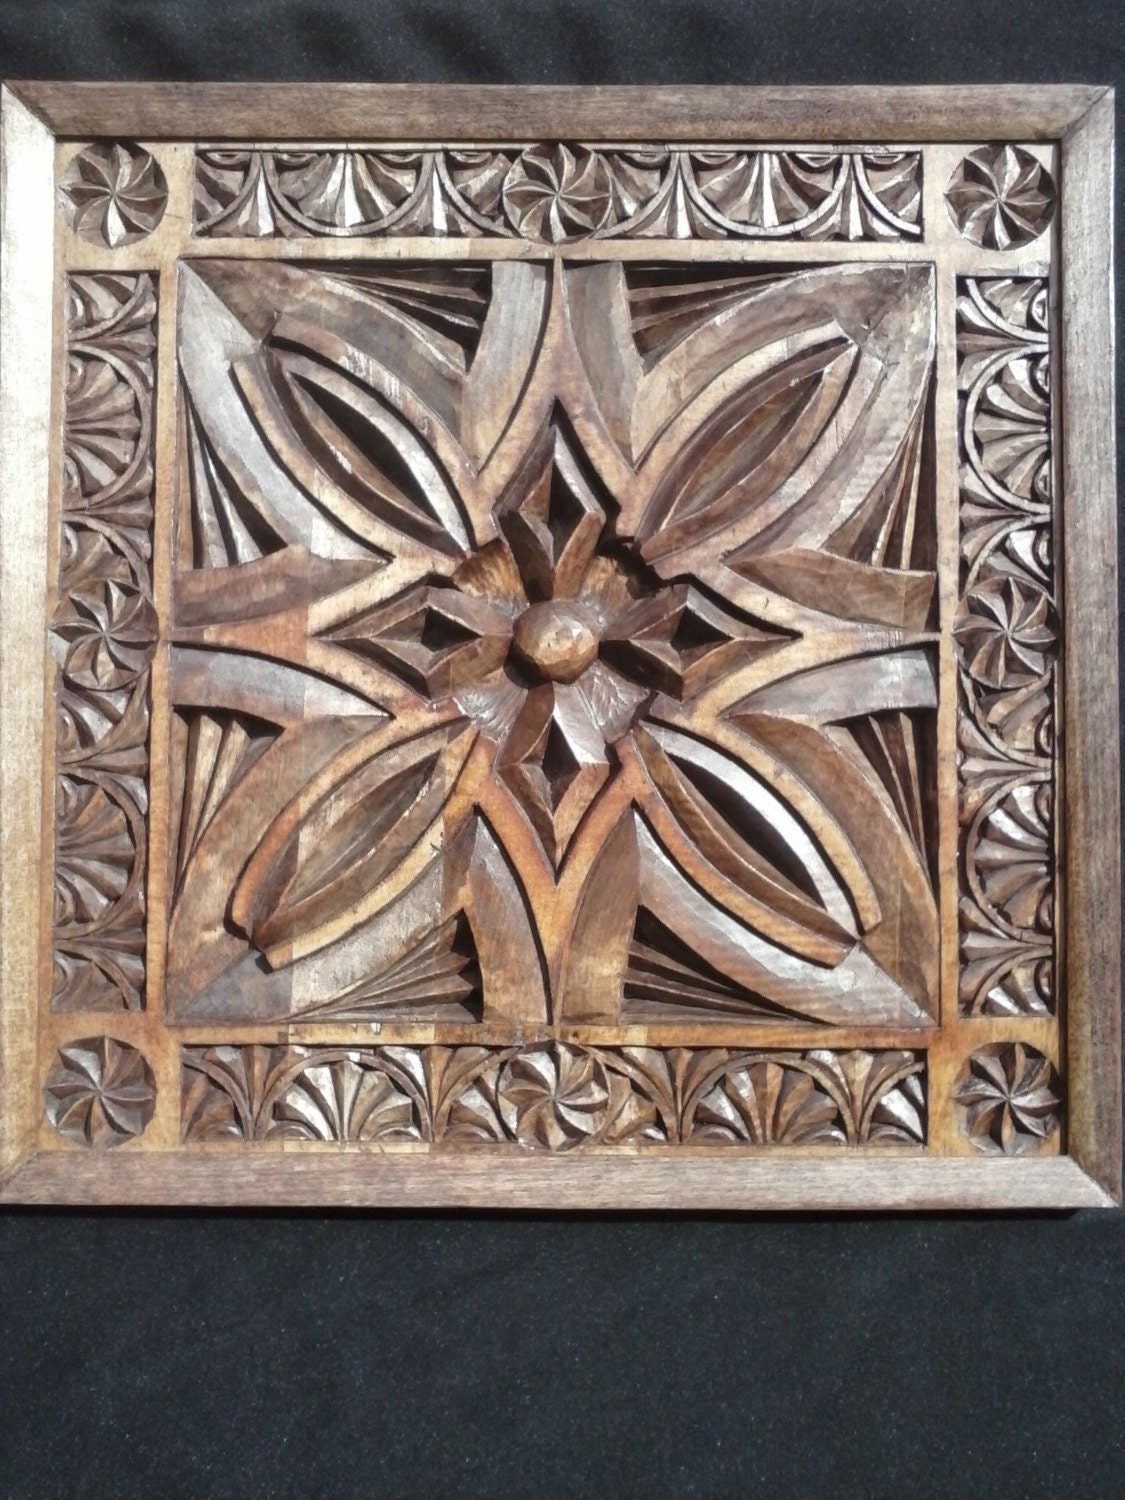 Wood carving wall art panel chip carved by hand in tulip